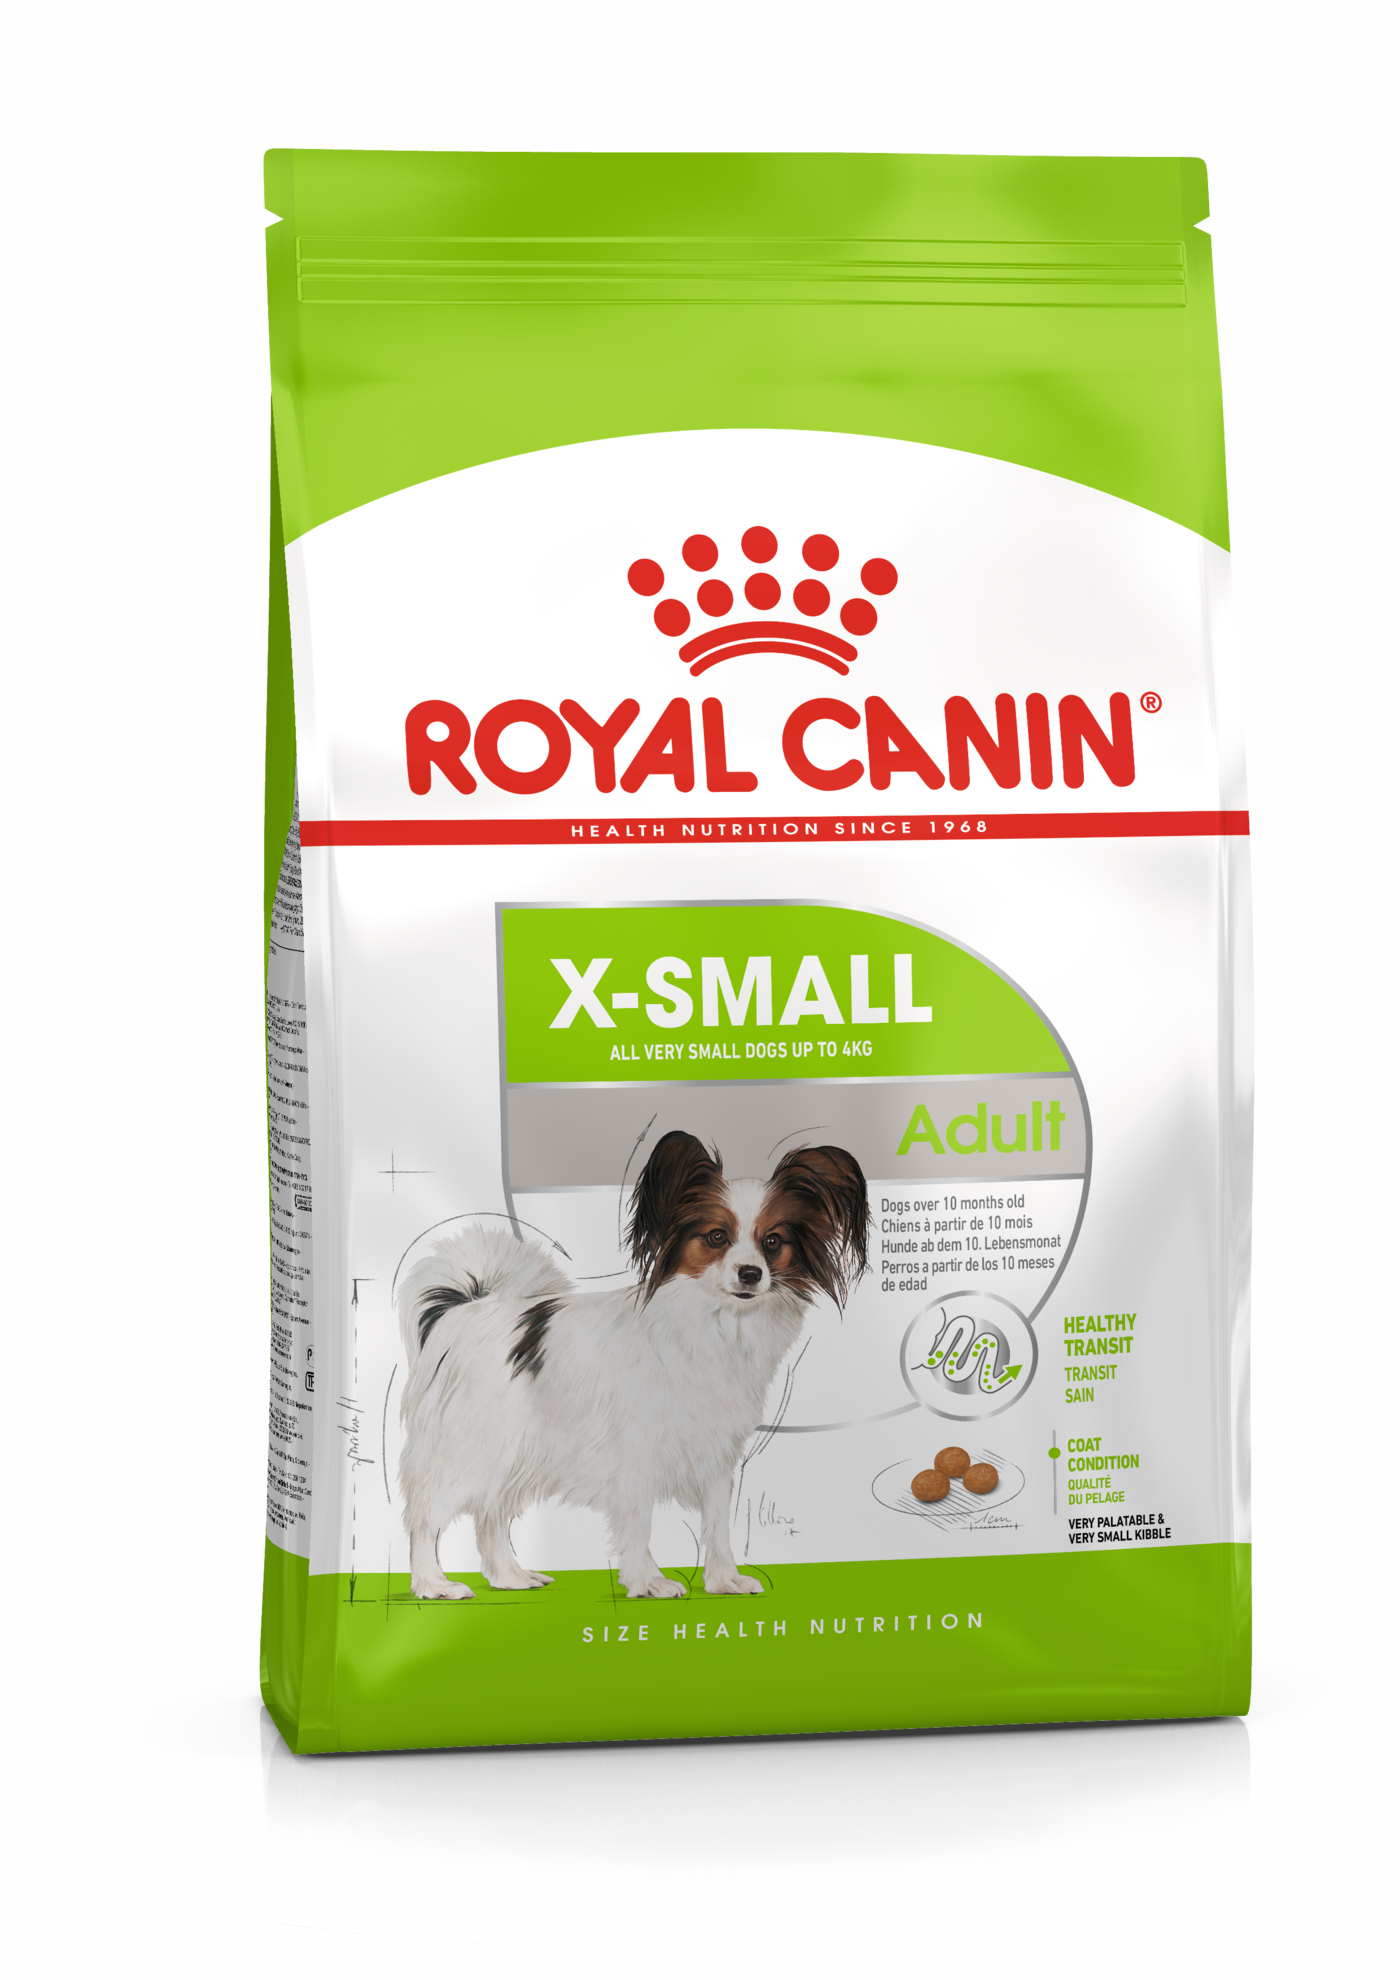 Xsmall Adult 500 g.